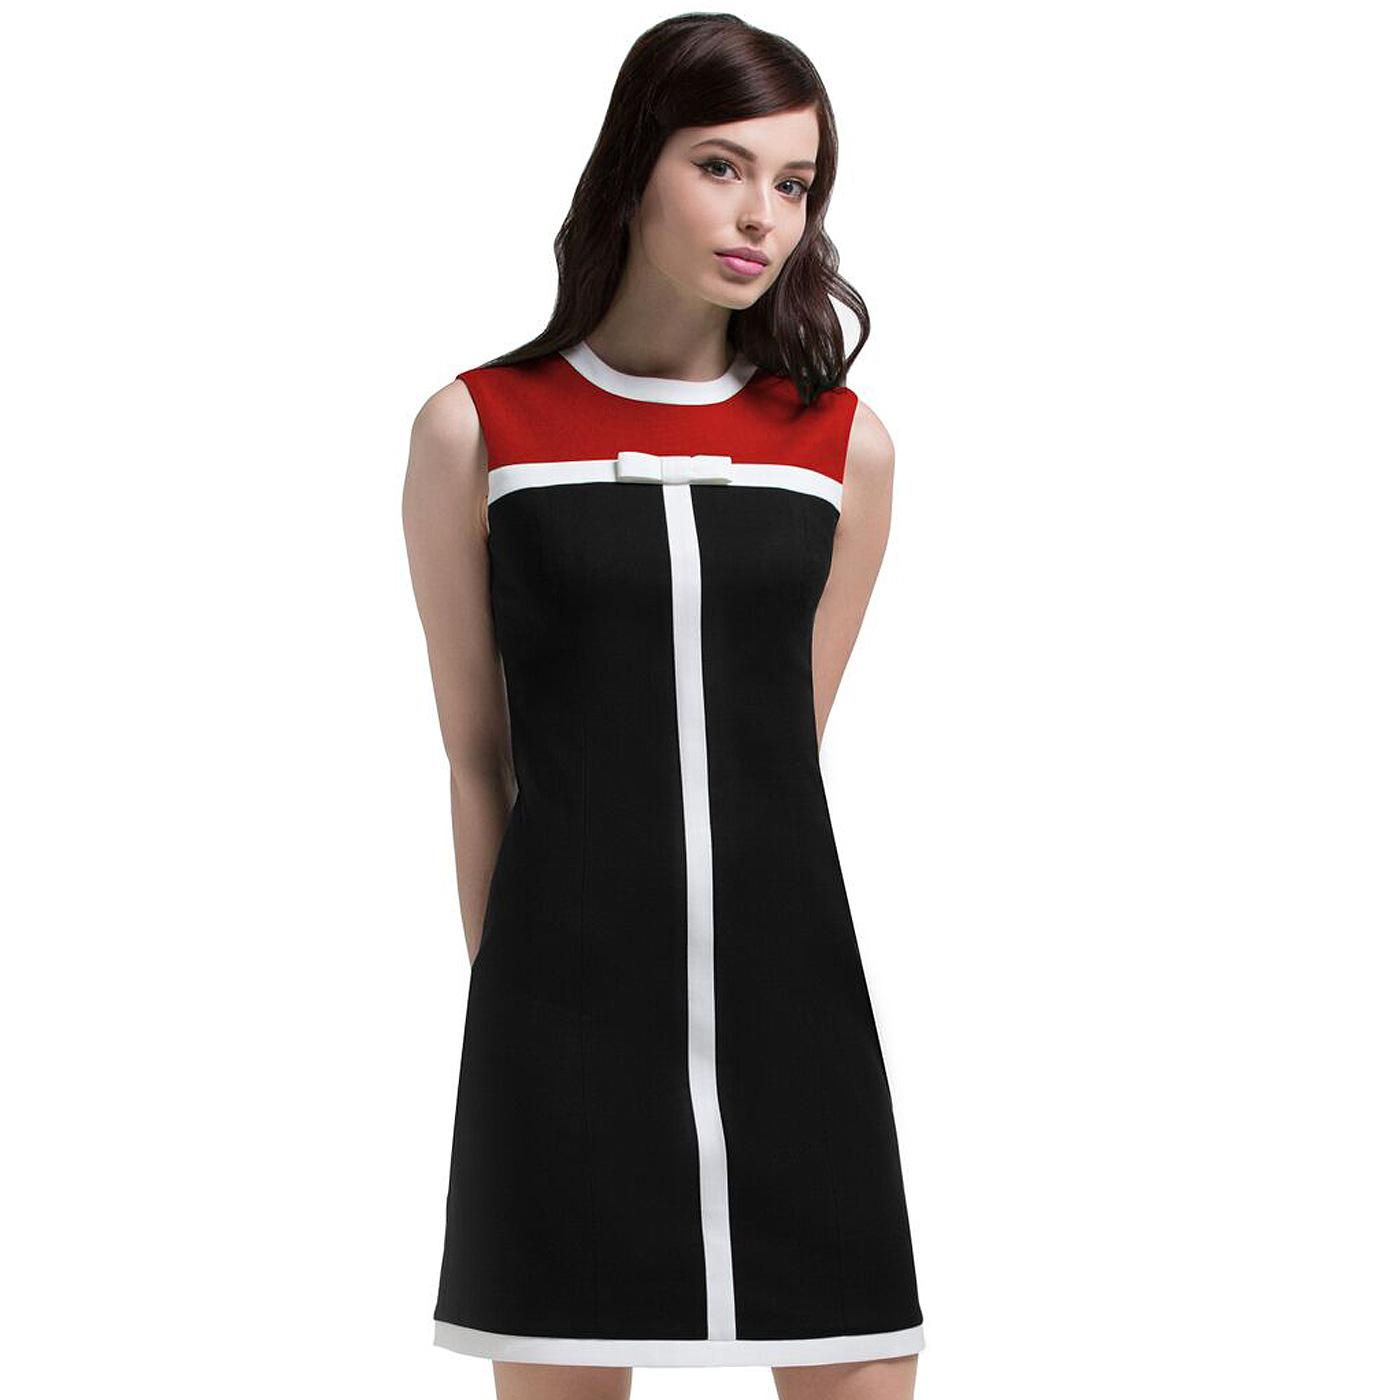 MARMALADE Retro 60s Mod Bow Dress in Black/Red